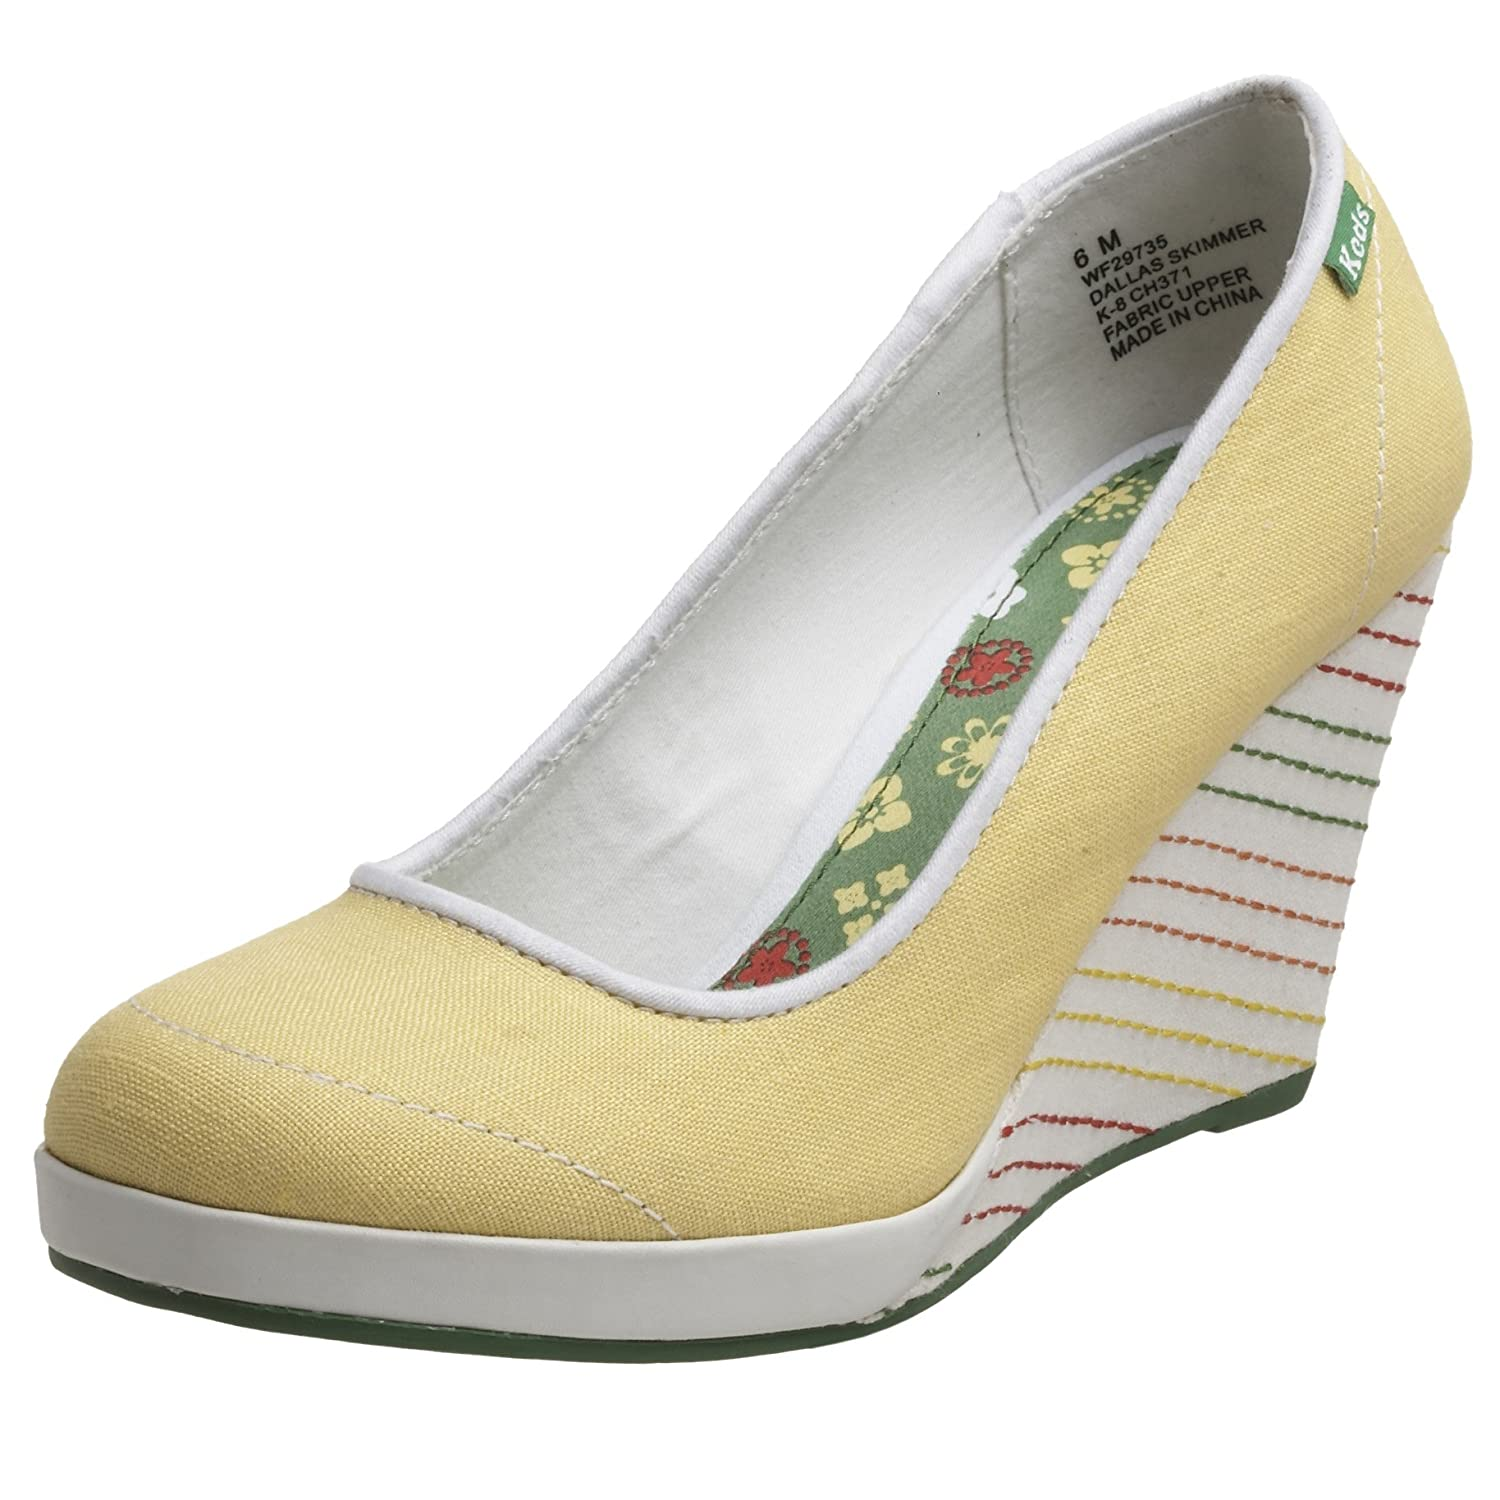 Keds Women's Dallas Skimmer Wedge - Free Overnight Shipping & Return Shipping: Endless.com :  platform heels keds skimmer